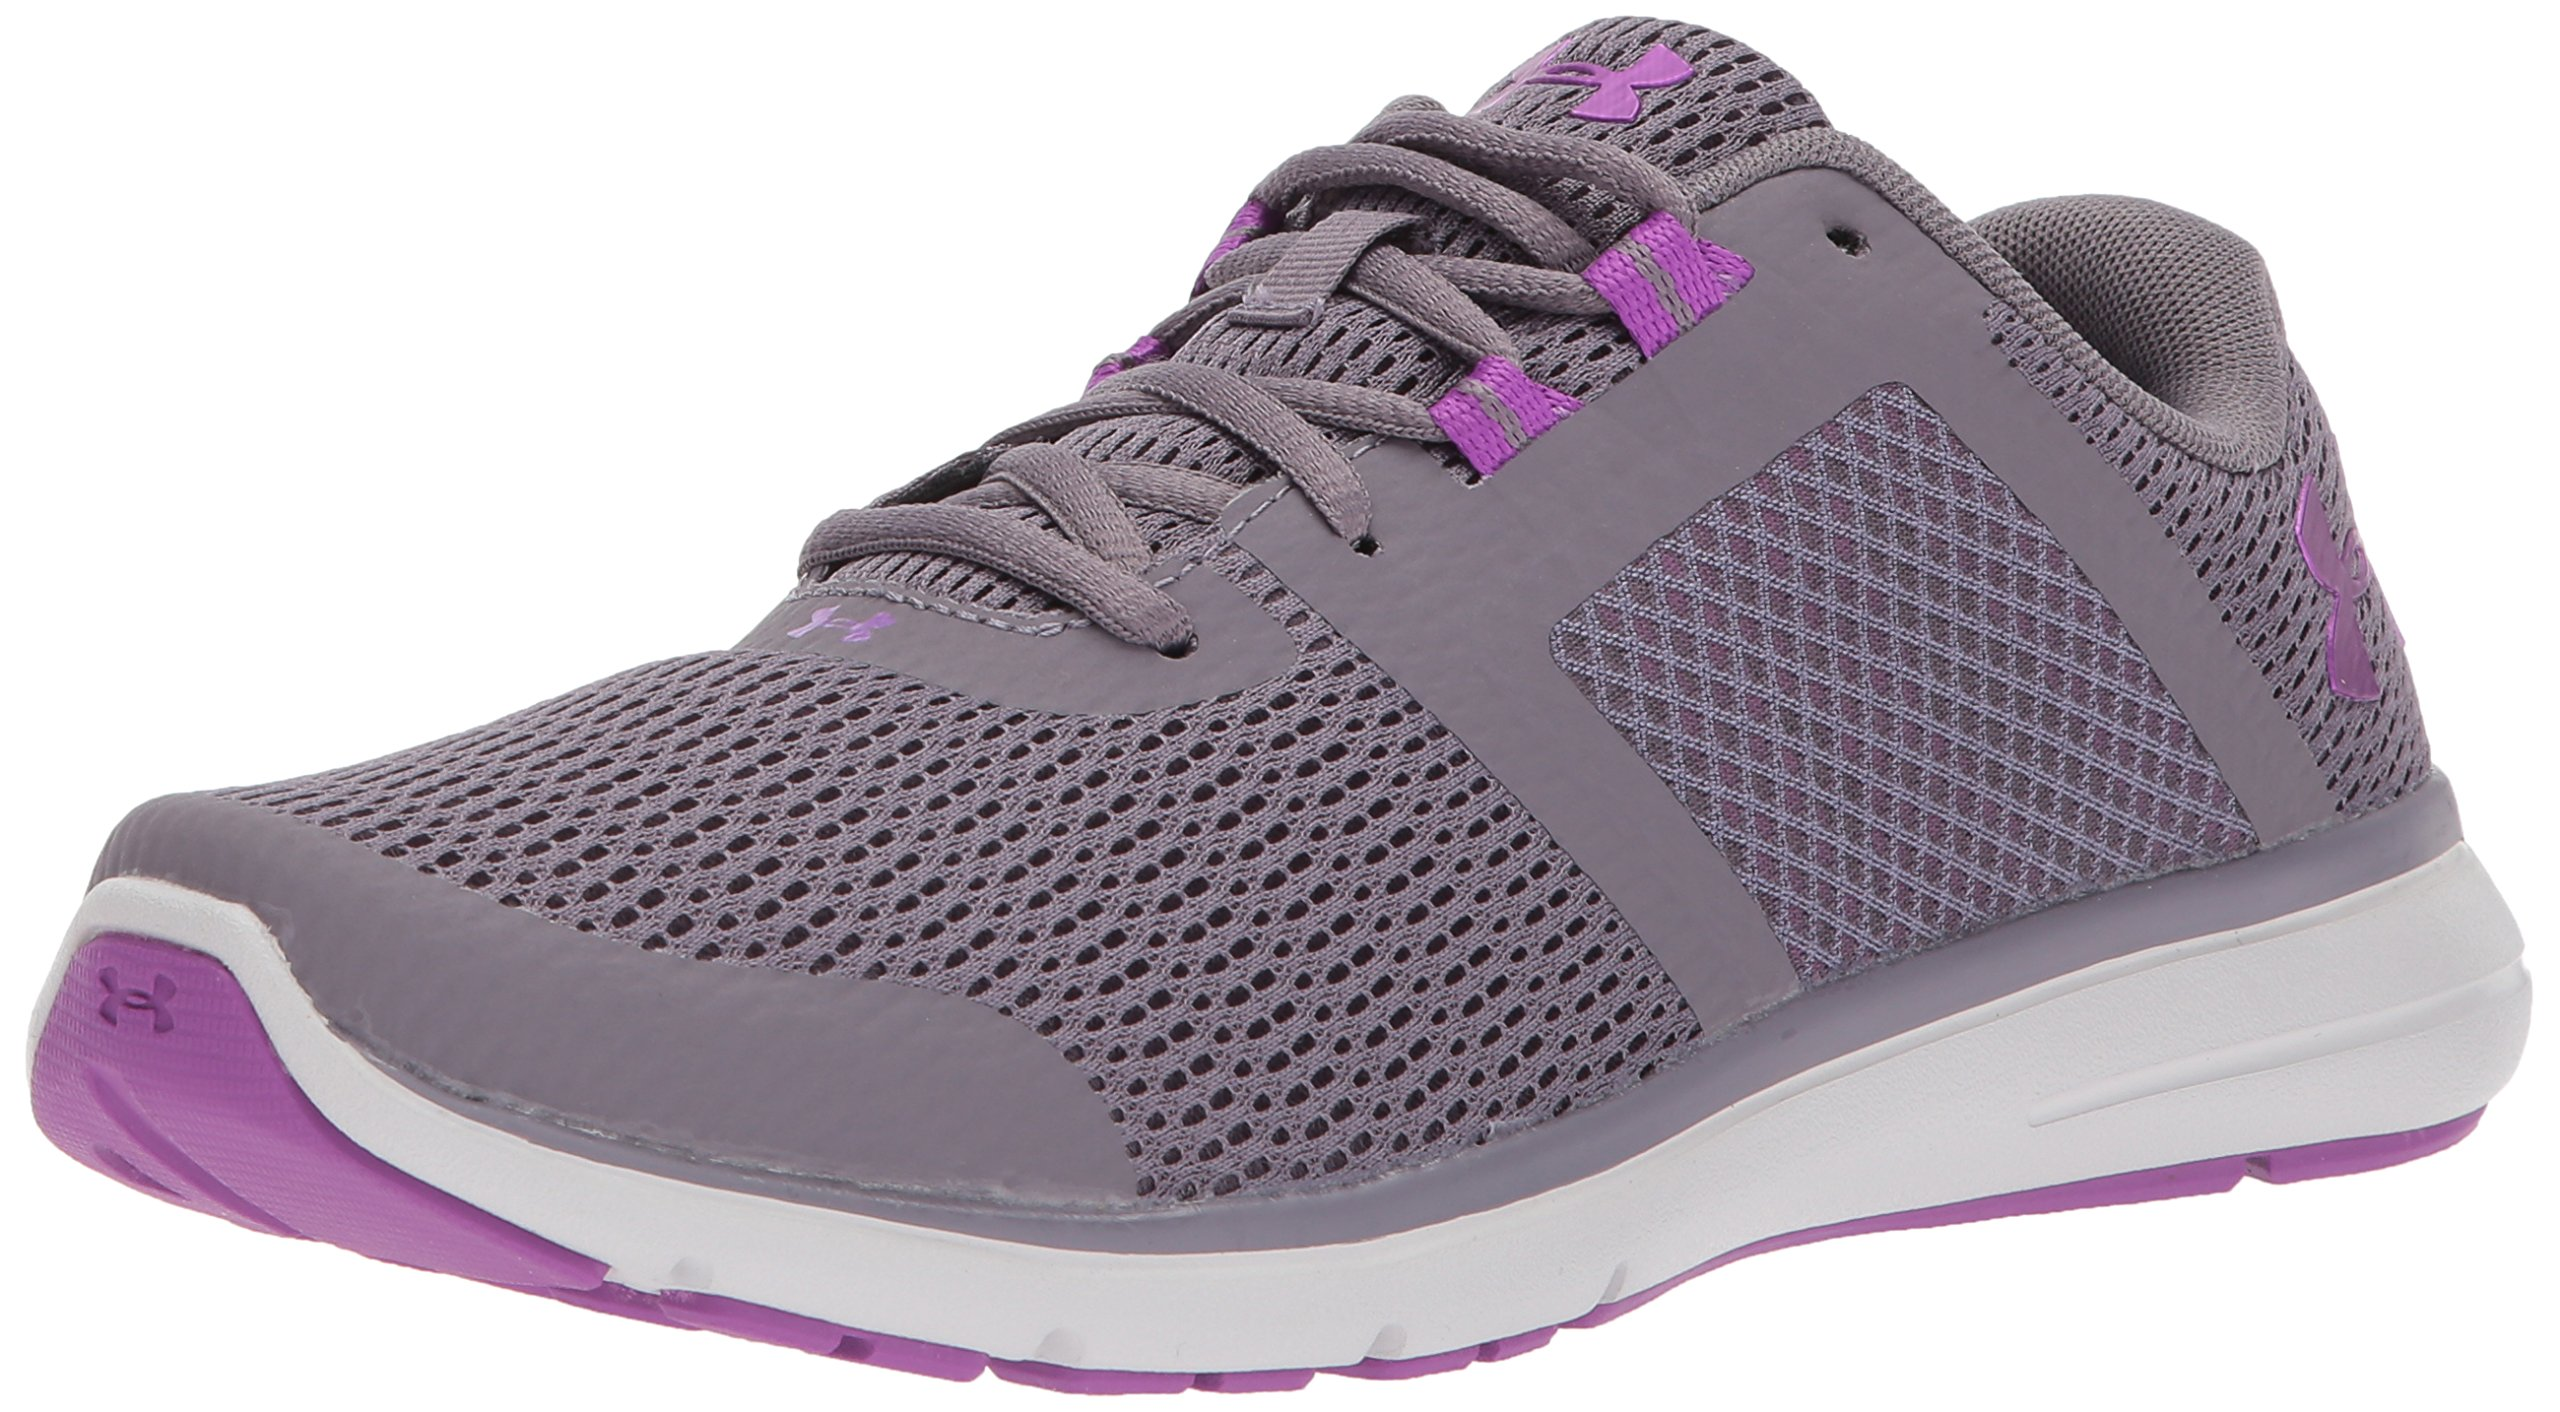 Under Armour Women's Fuse FST Running Shoe, Flint (101)/Glacier Gray, 9